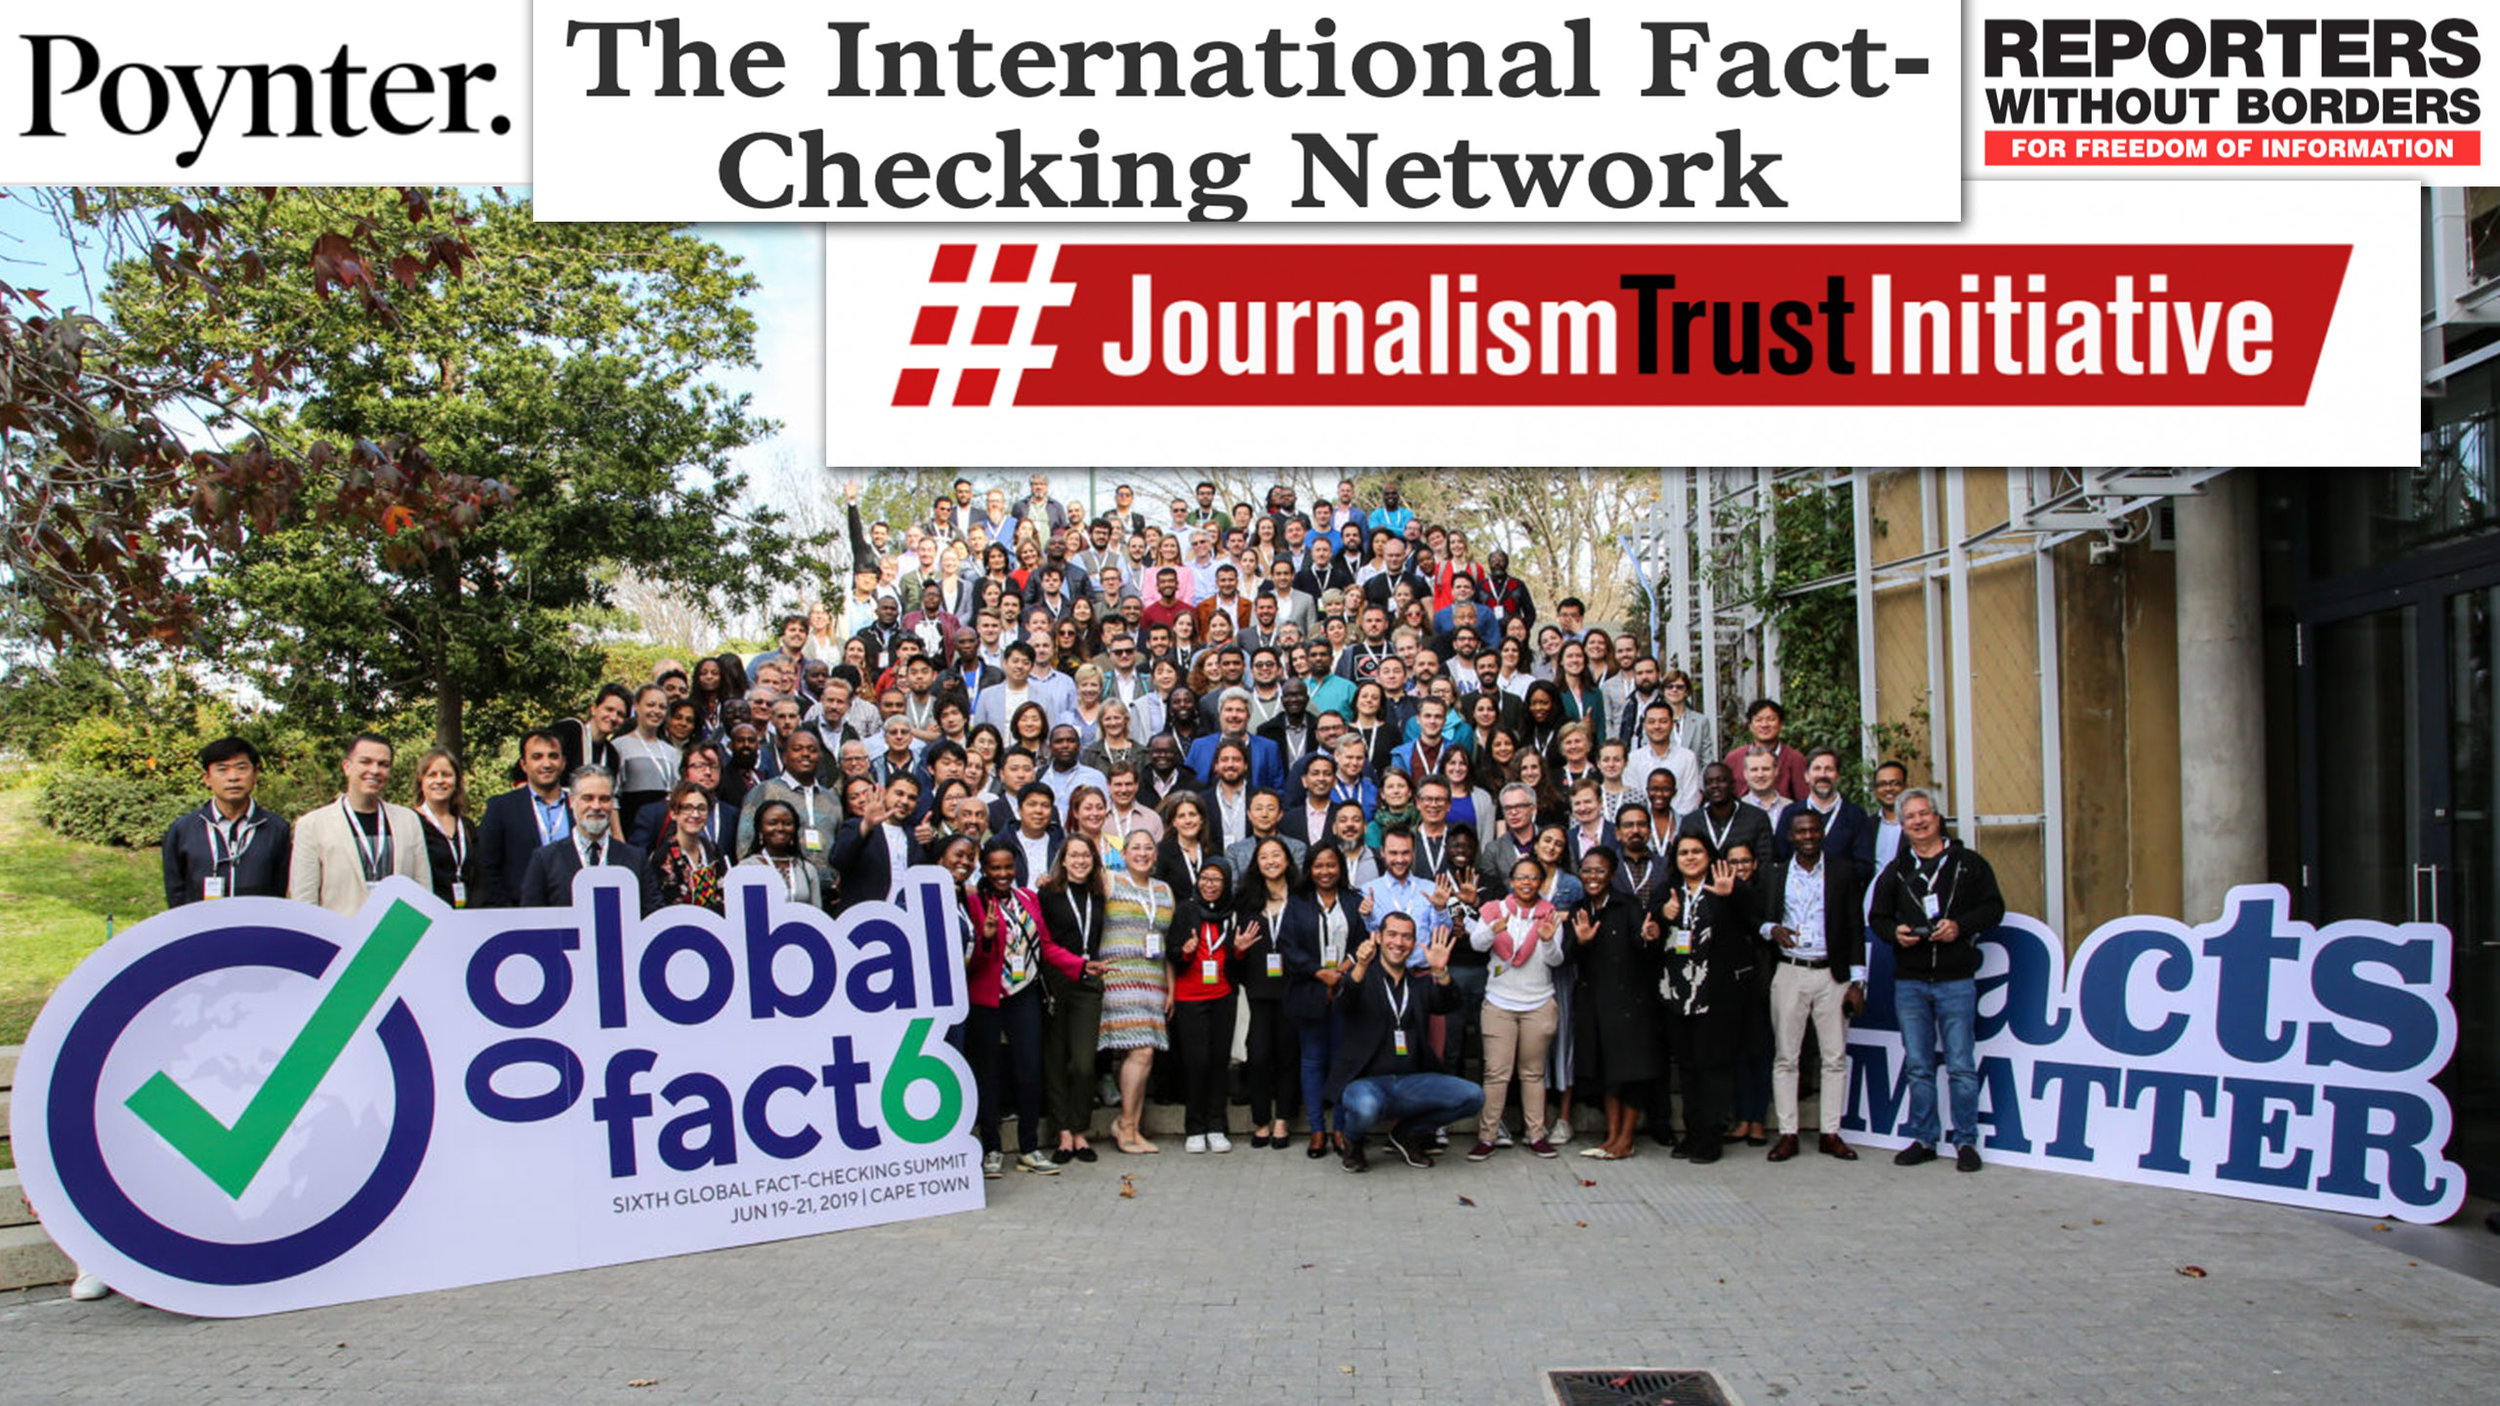 "Collage of screenshots from  Poynter's ""International Fact-Checking Network"" (IFCN)  showing a bunch of liberals touting a ""Global Fact 6: Sixth Global Fact-Checking Summit,"" June 19-21, 2019 in Cape Town, South Africa (where they under-report the attack on whites), and a  ""Hashtag Journalism Trust Initiative""  pushed by the presumably far-left group Reporters Without Borders ""for Freedom of Information"" (except not the truth, one can surmise)."